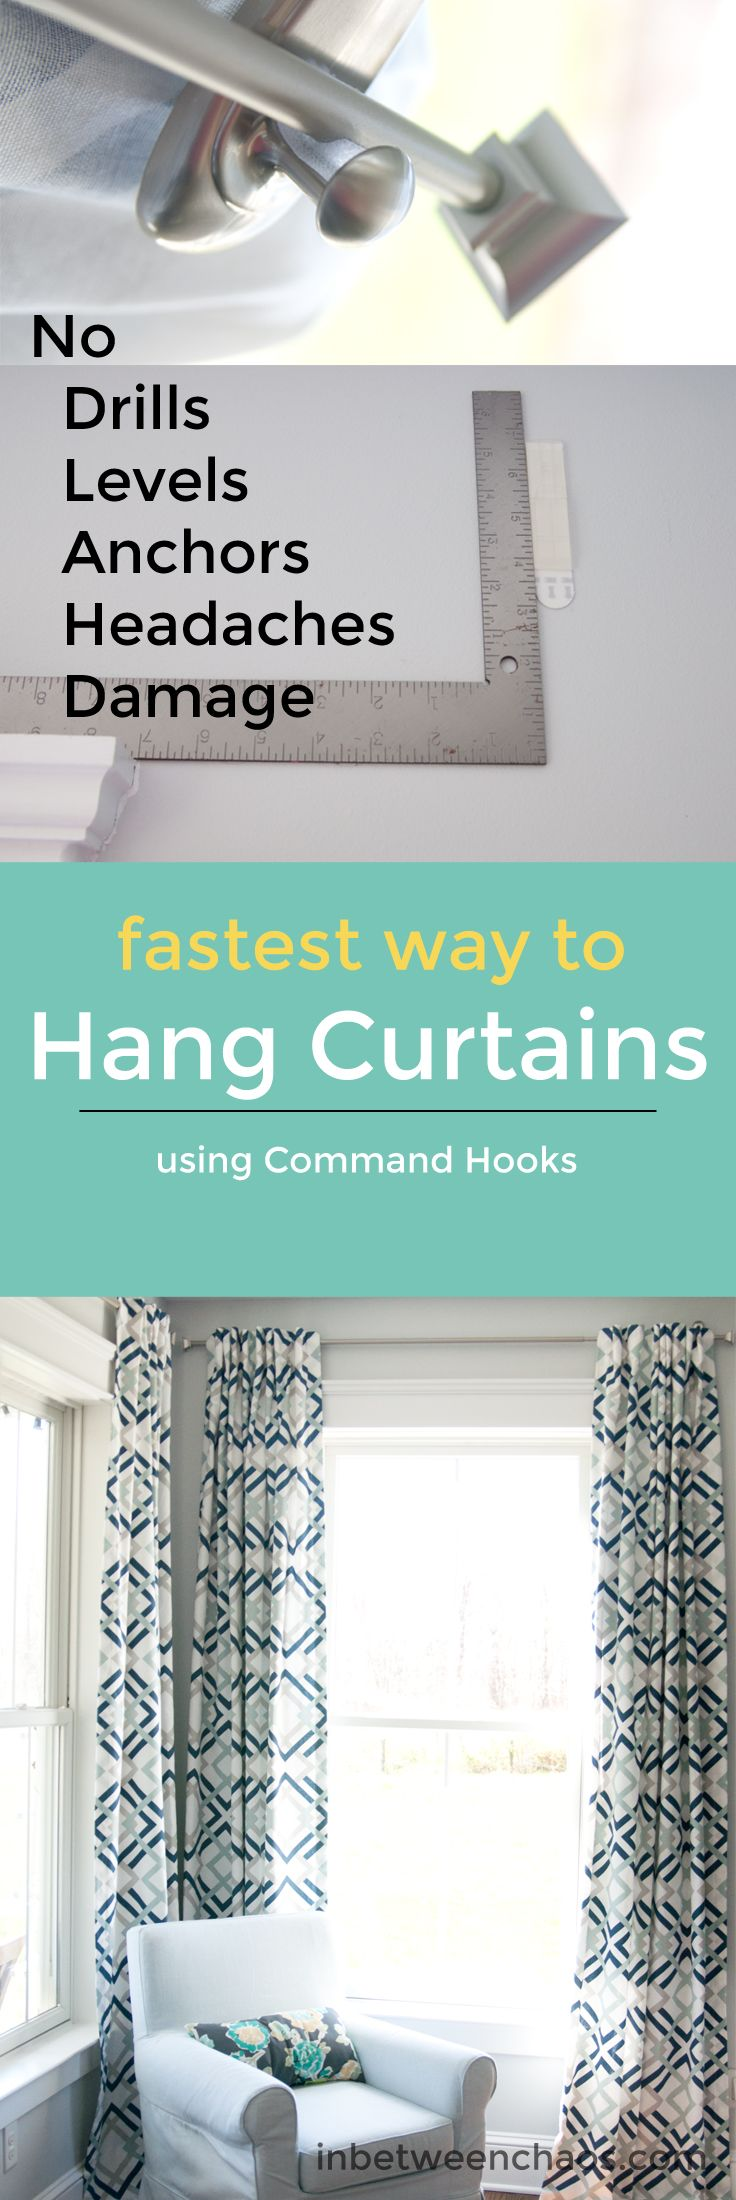 25 Best Ideas About Hanging Curtain Rods On Pinterest How To Hang Curtains Window Curtains